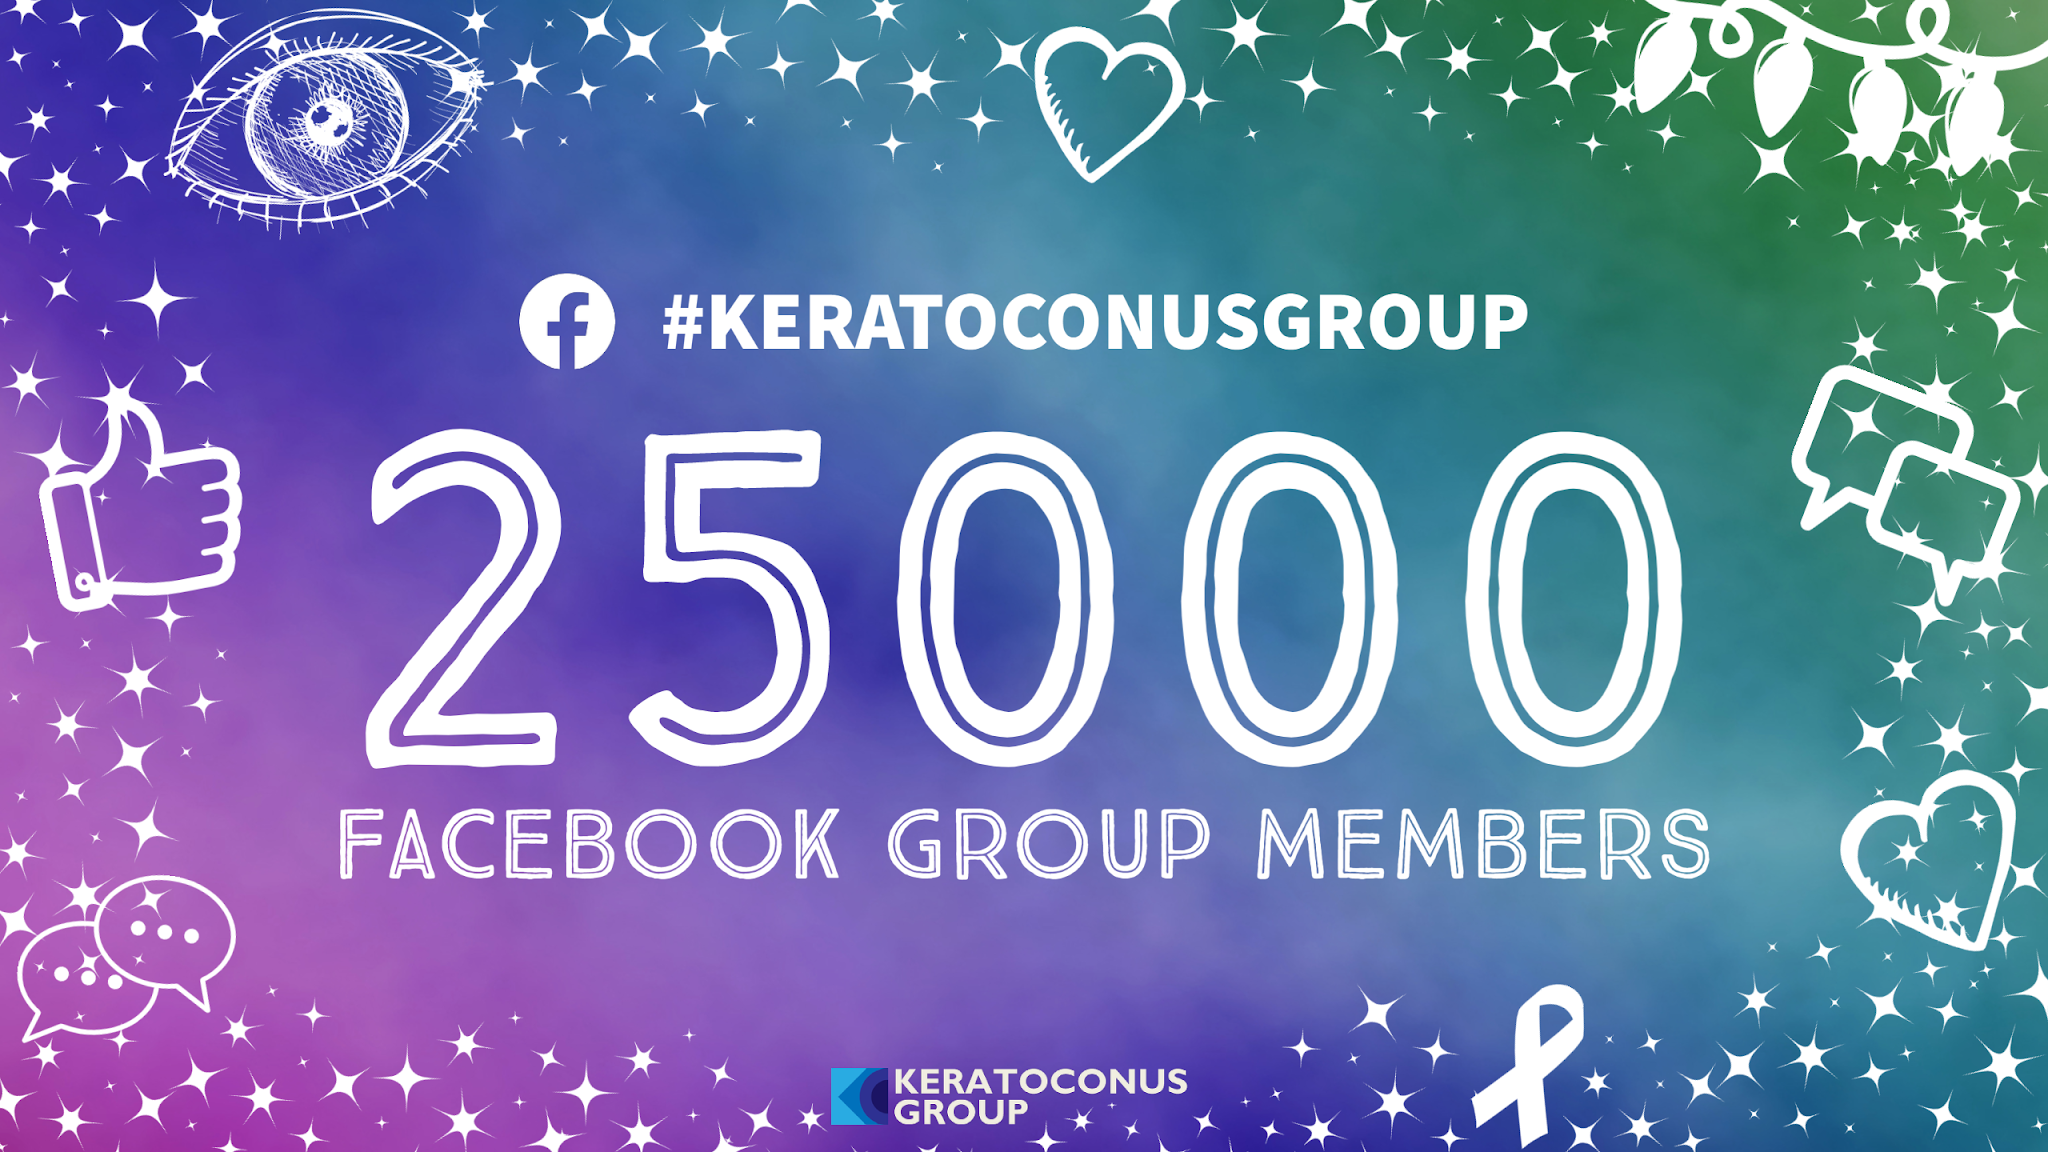 Keratoconus Group's private Facebook community now has more than 25,000 members